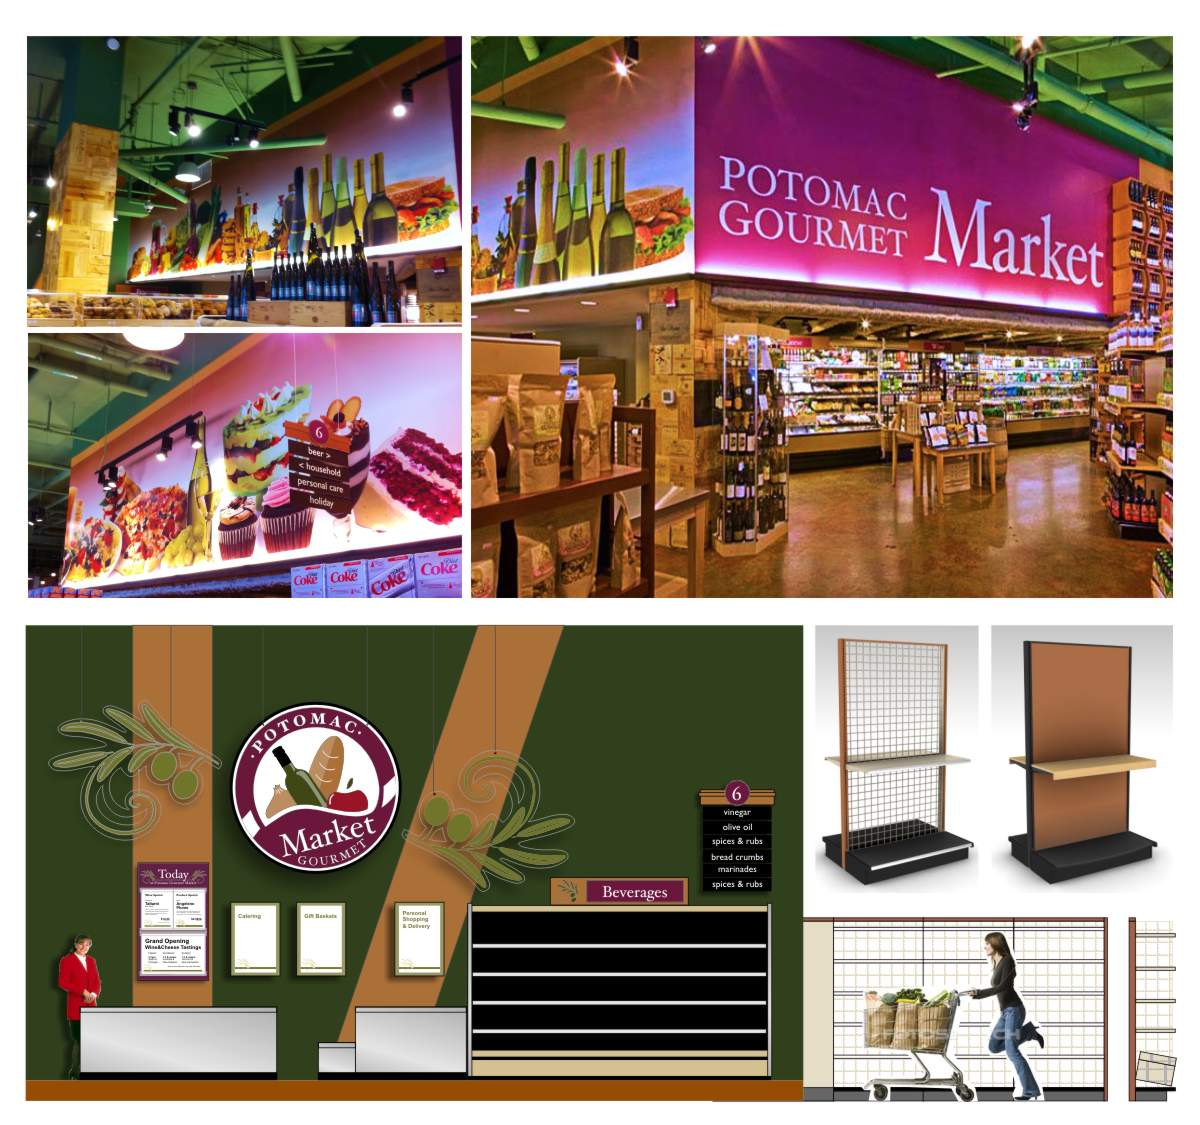 Photos showing interior design elements, grand format printed photo wall murals of food still life imagery, composite elevation of branded graphic elements in context and Lozier grocery display shelving fixtures. Design by Mark Ksiazewski at Centre Street Creative